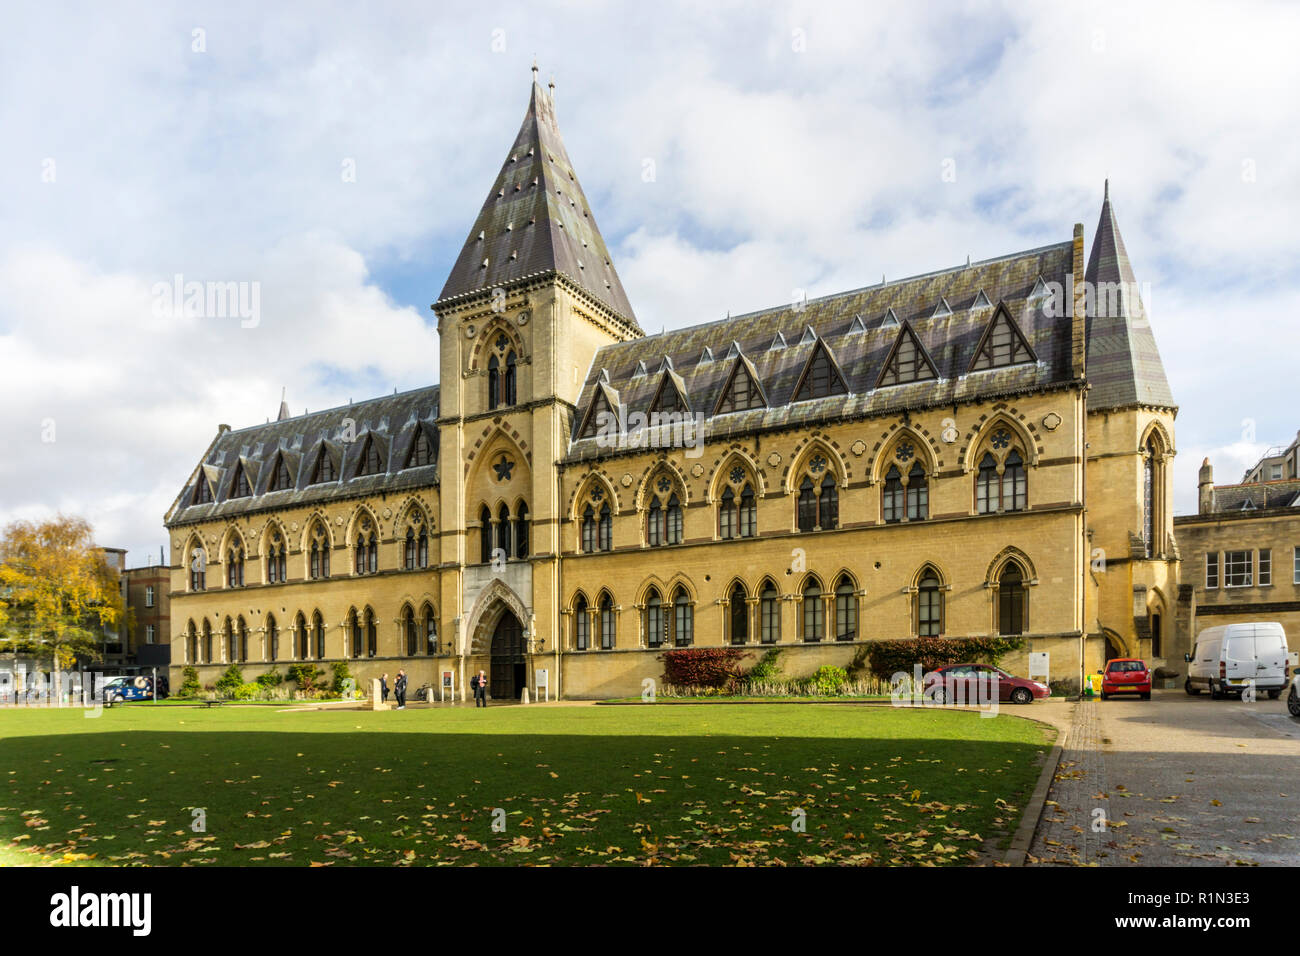 The Oxford University Museum of Natural History, Oxford. - Stock Image